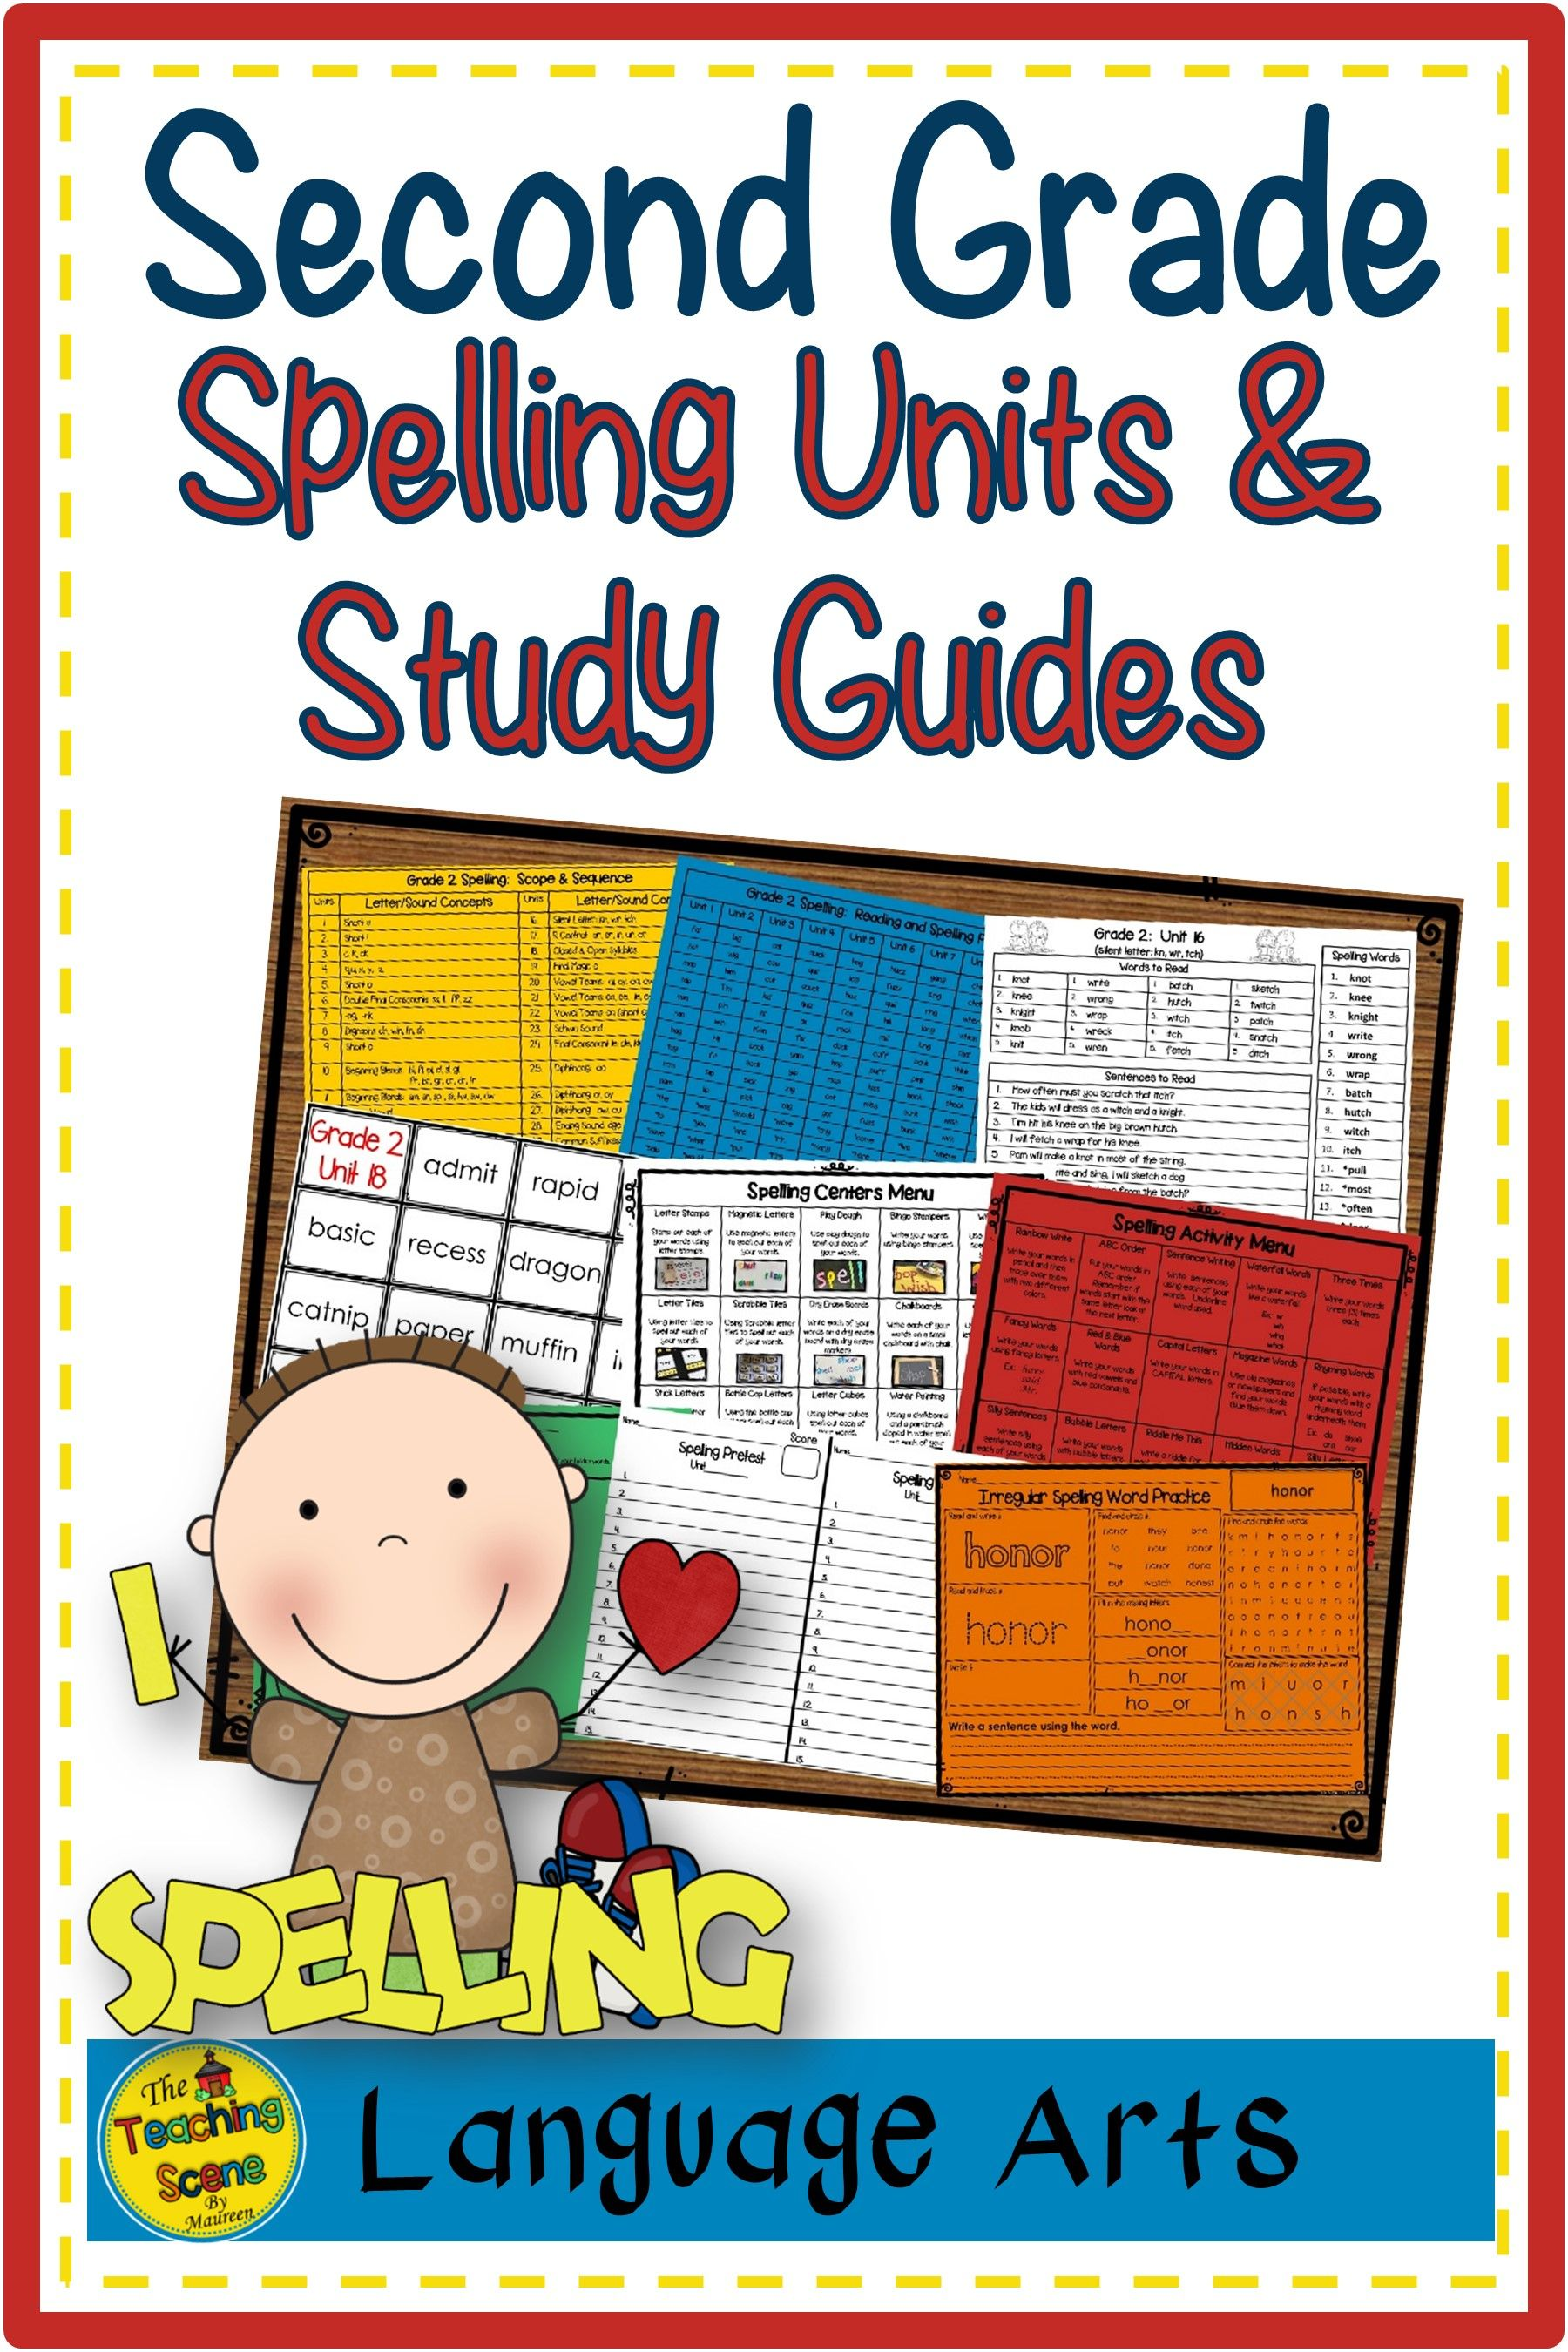 Second Grade Year Long Spelling Curriculum Units Study